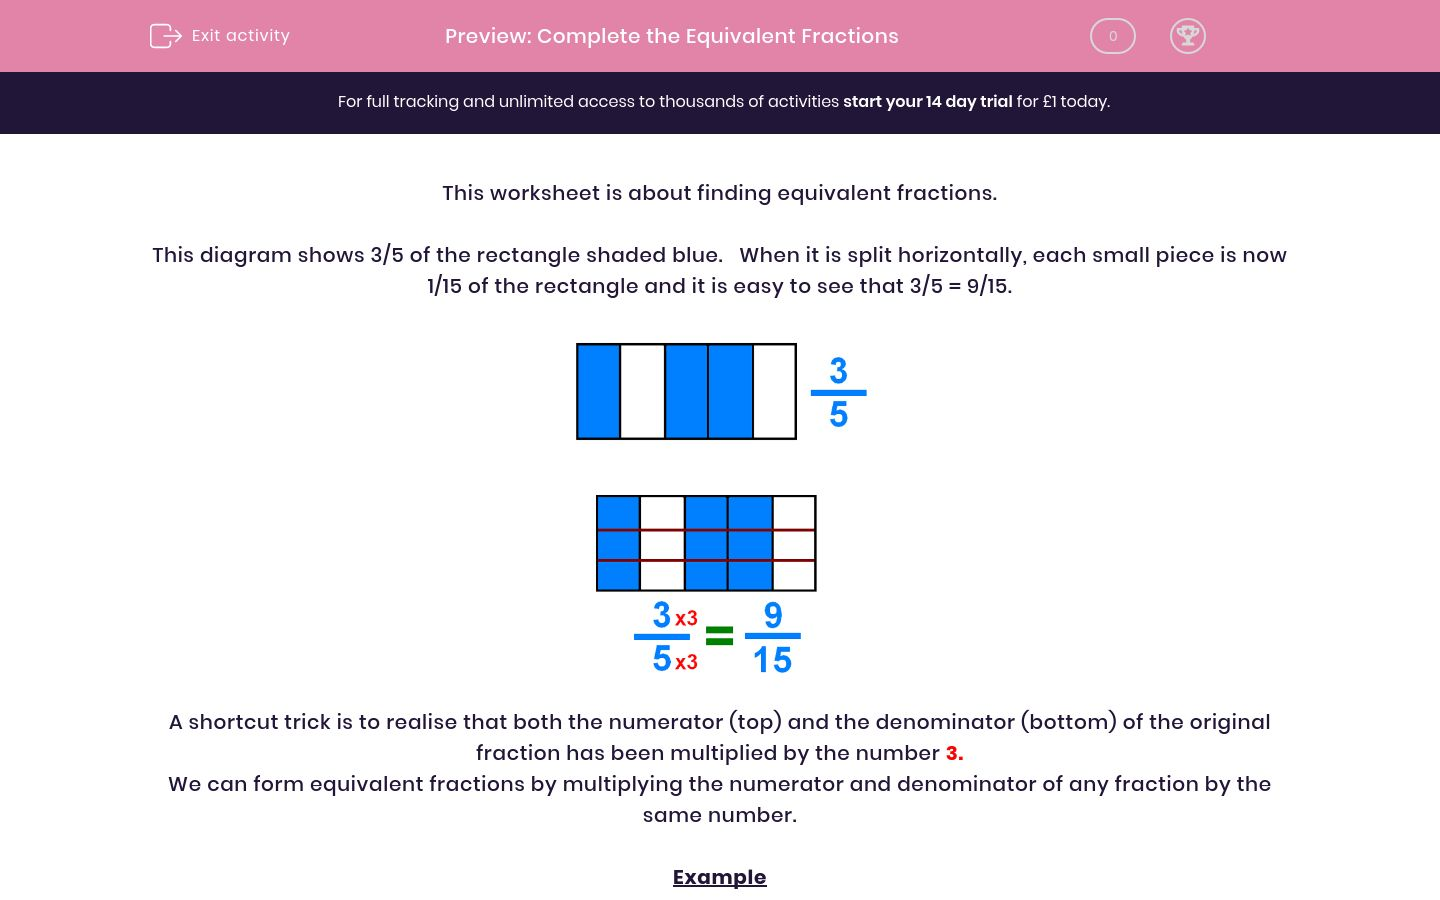 'Complete the Equivalent Fractions' worksheet